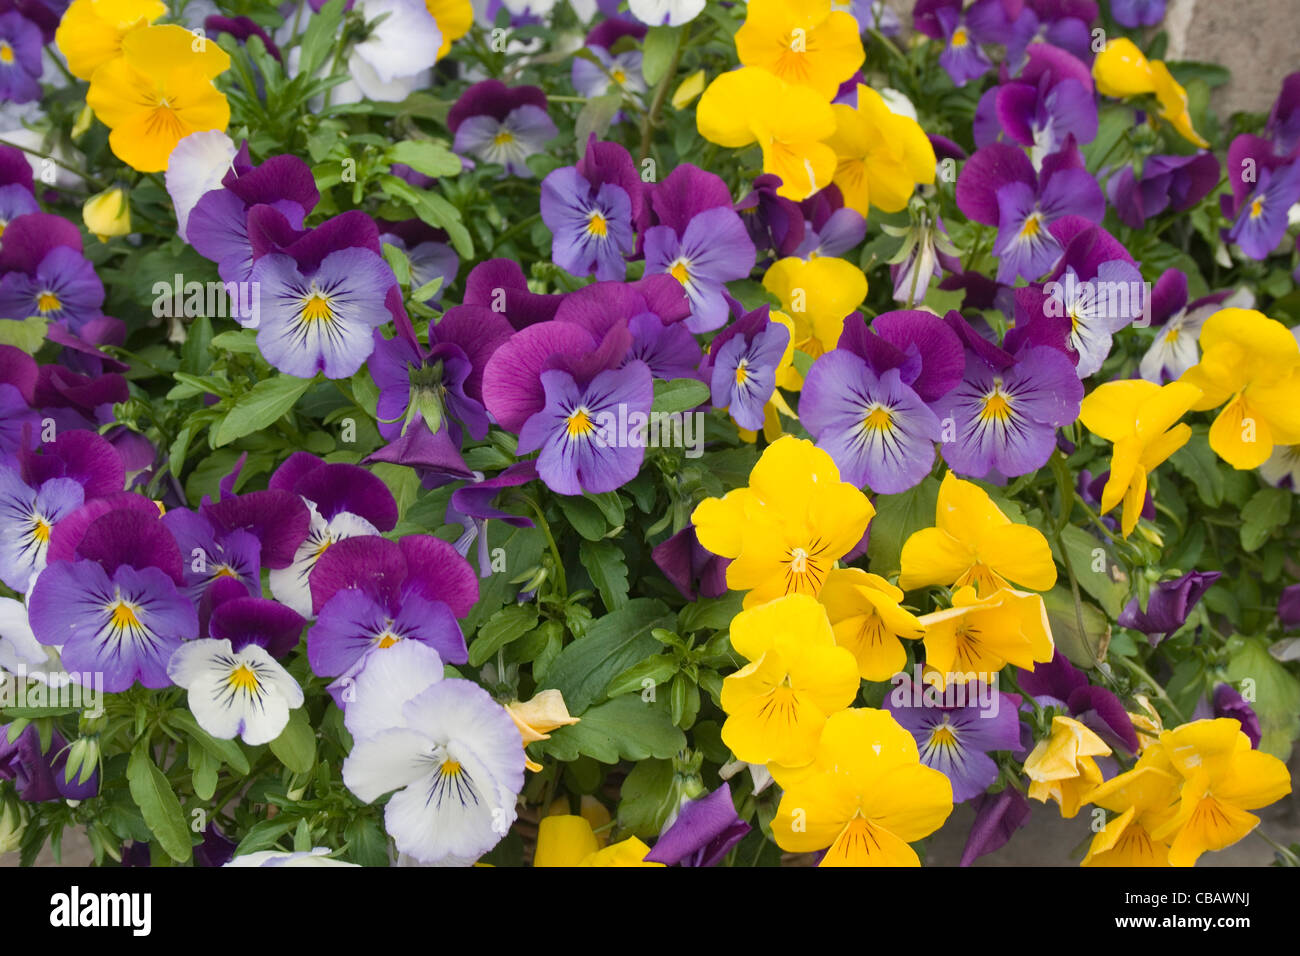 Lilac and yellow pansies. - Stock Image